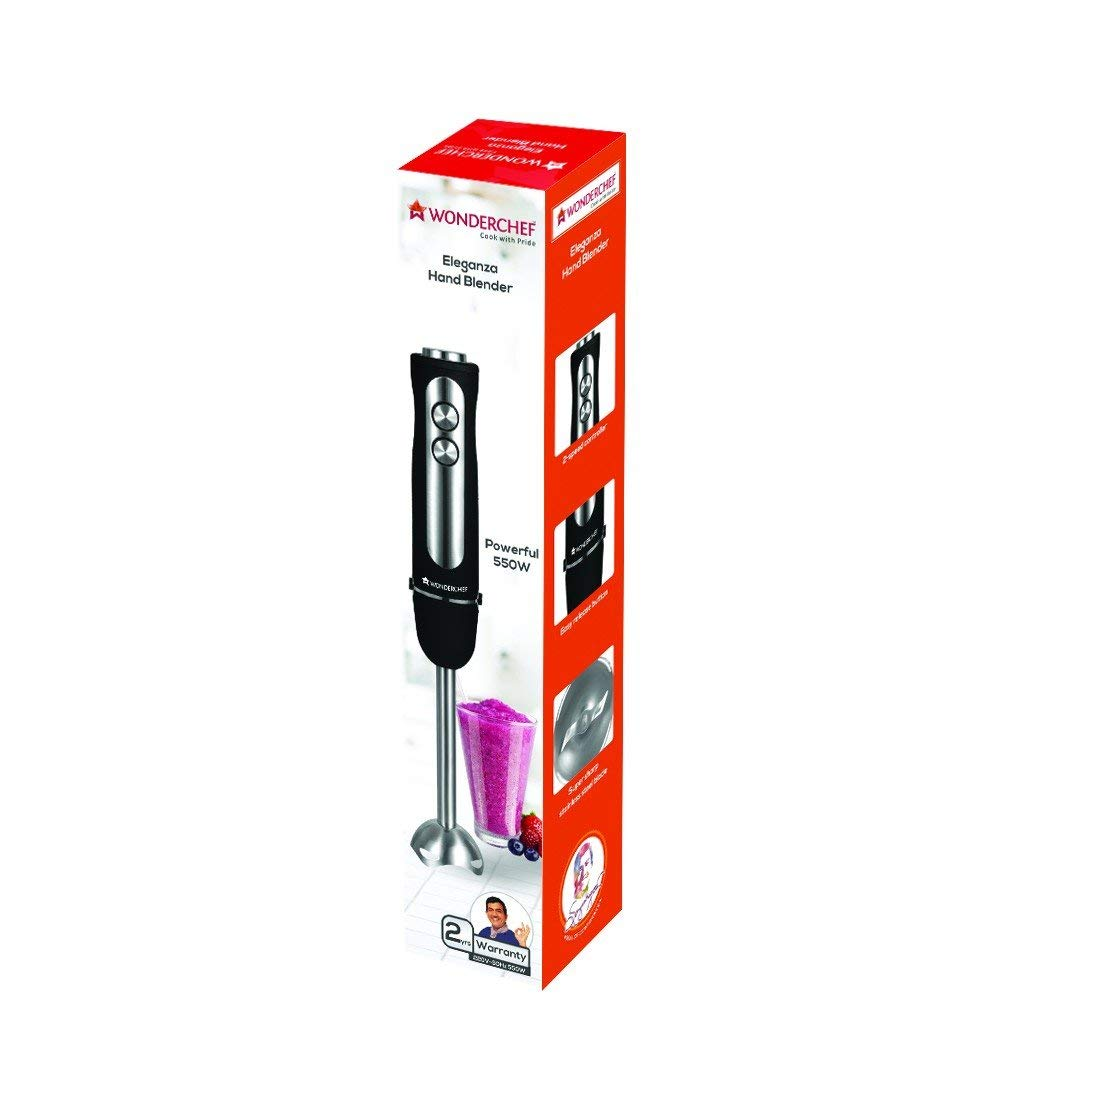 Wonderchef Eleganza 63152254 550 watt Hand Blender